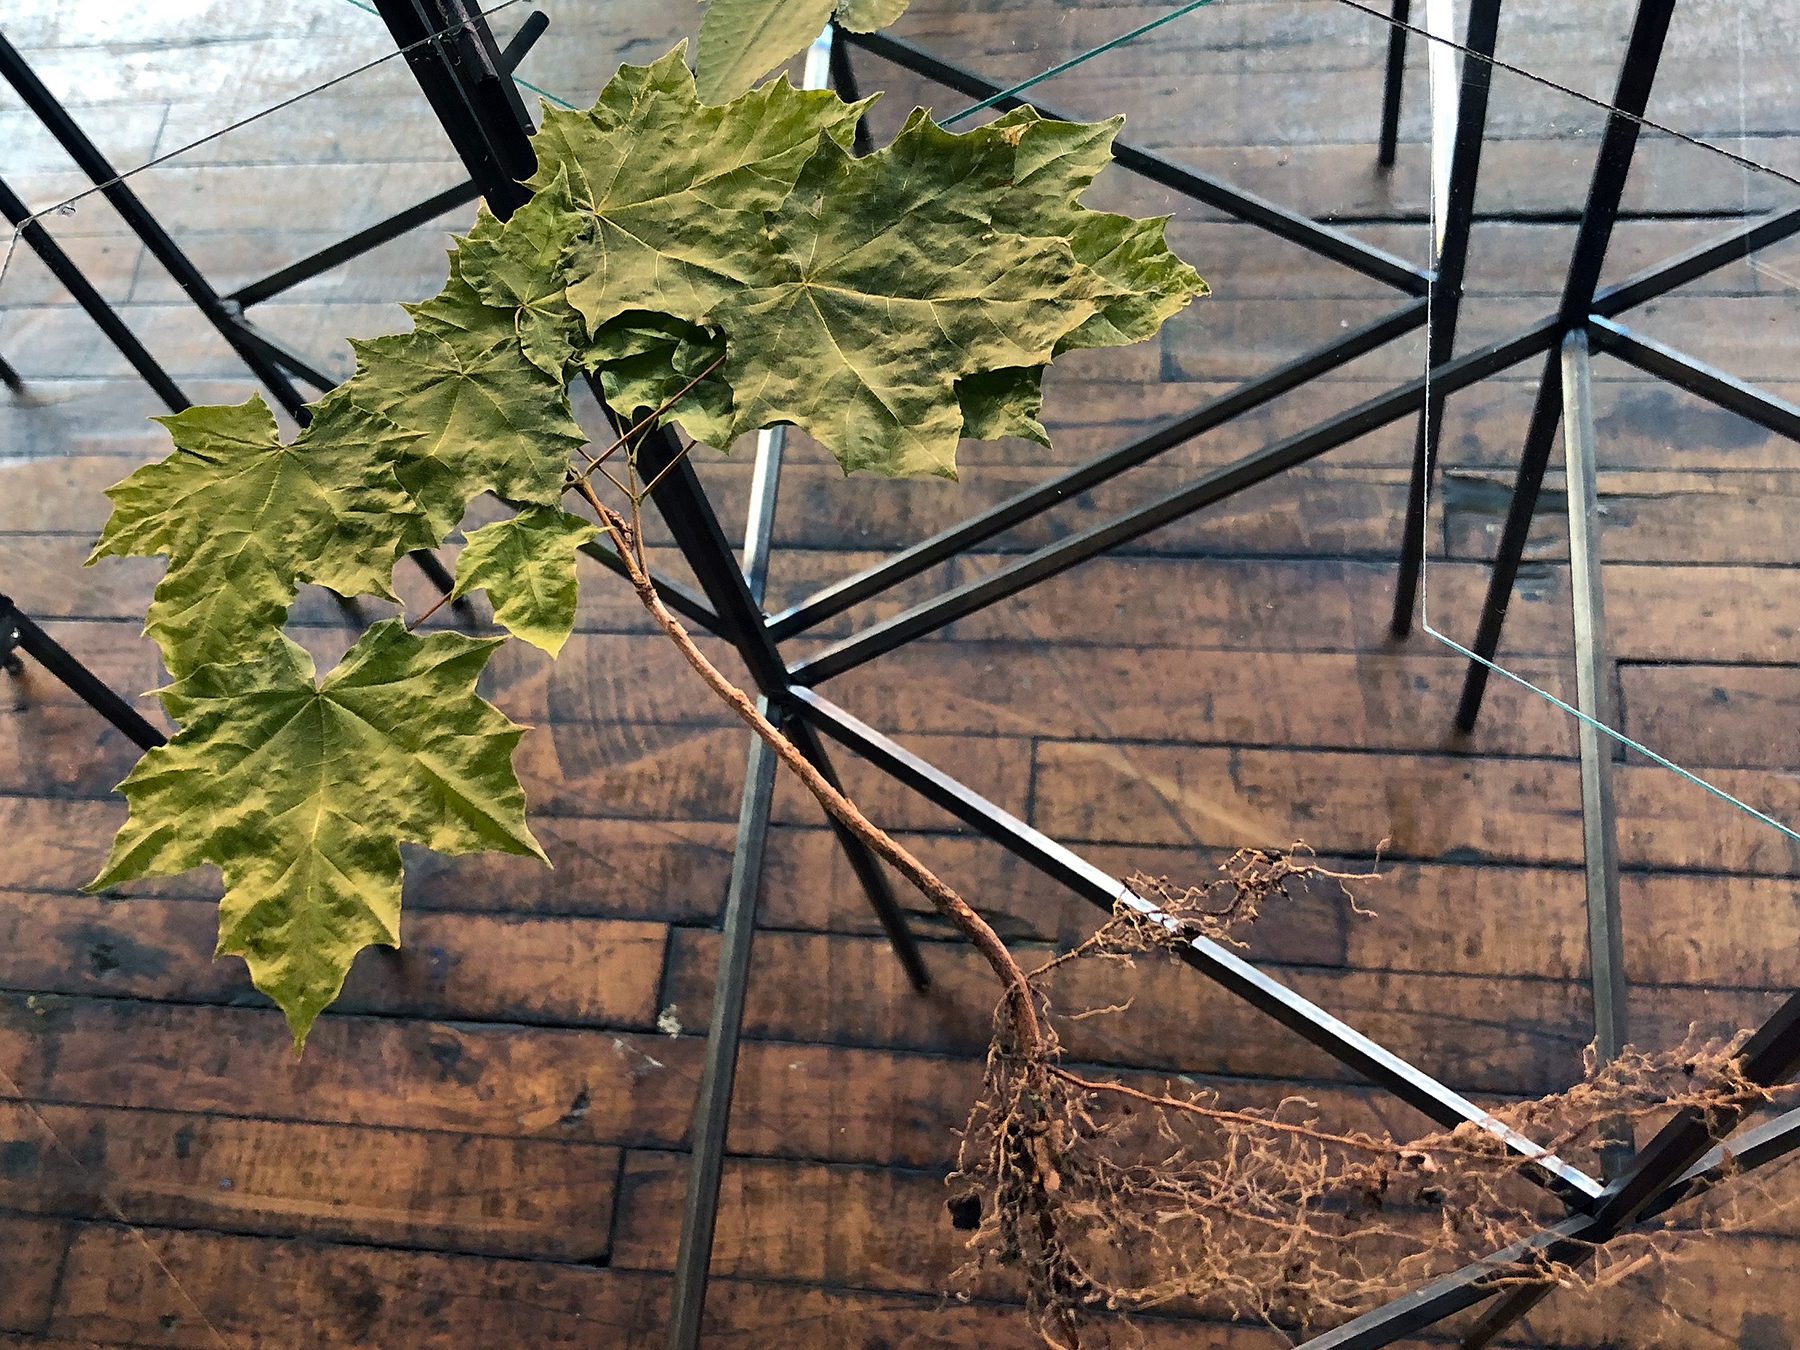 4th NATURE  detail of Norway Maple, pressed plants, glass, steel, 3'h x 20'w x 6'd total 2018